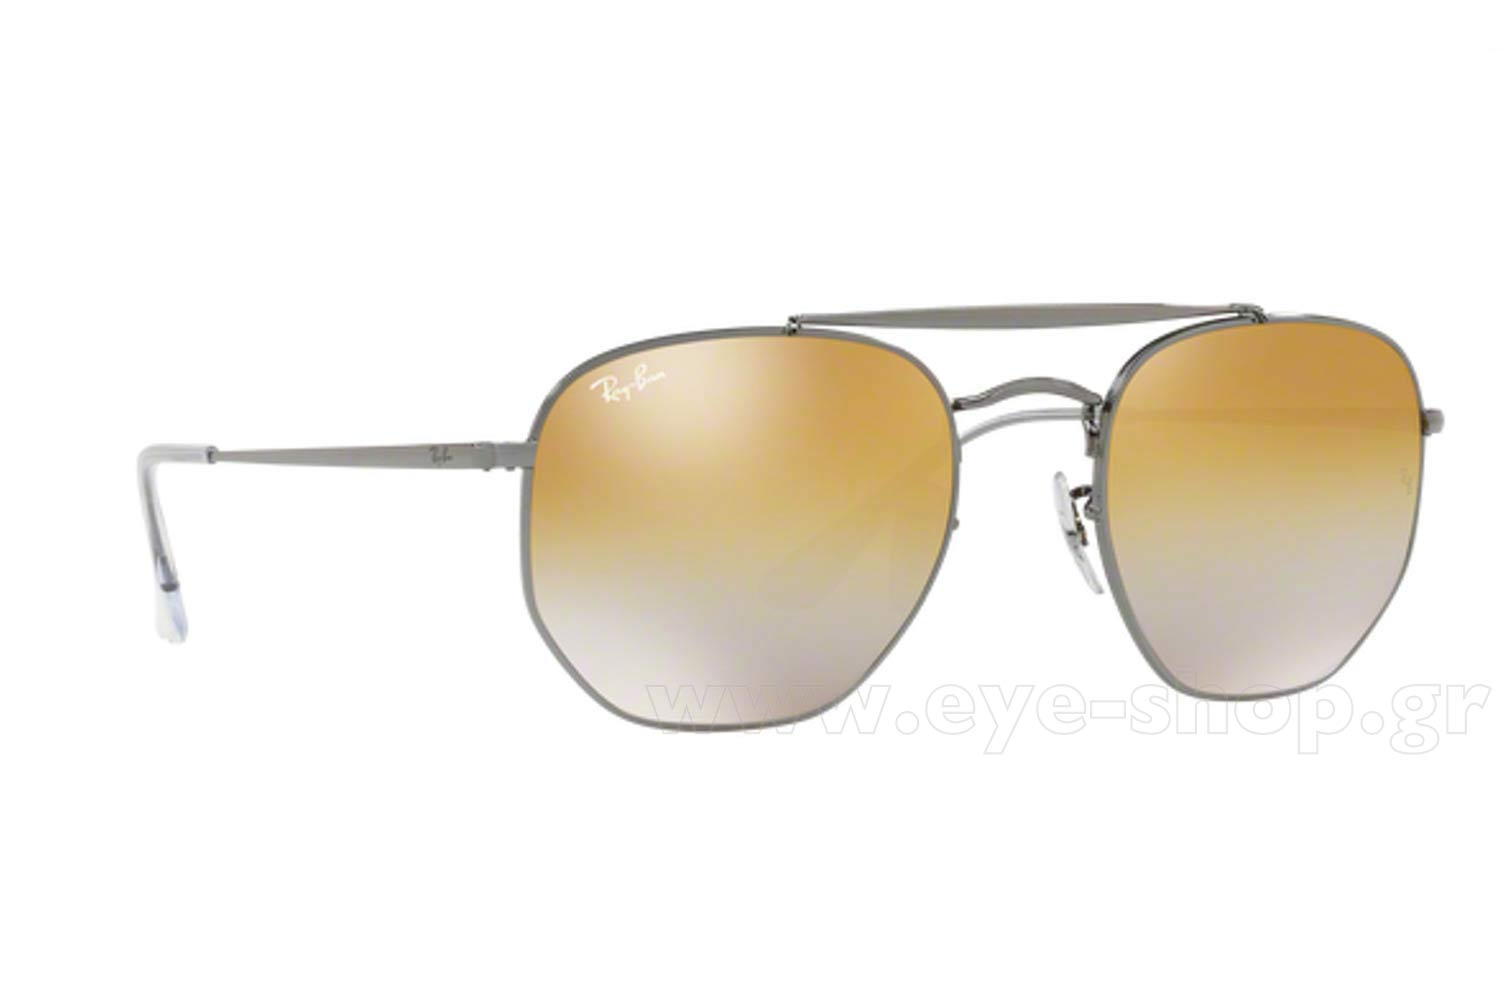 8dfc8f52c4 SUNGLASSES Rayban 3648 THE MARSHAL 004 I3 Hexagonal Double Bridge